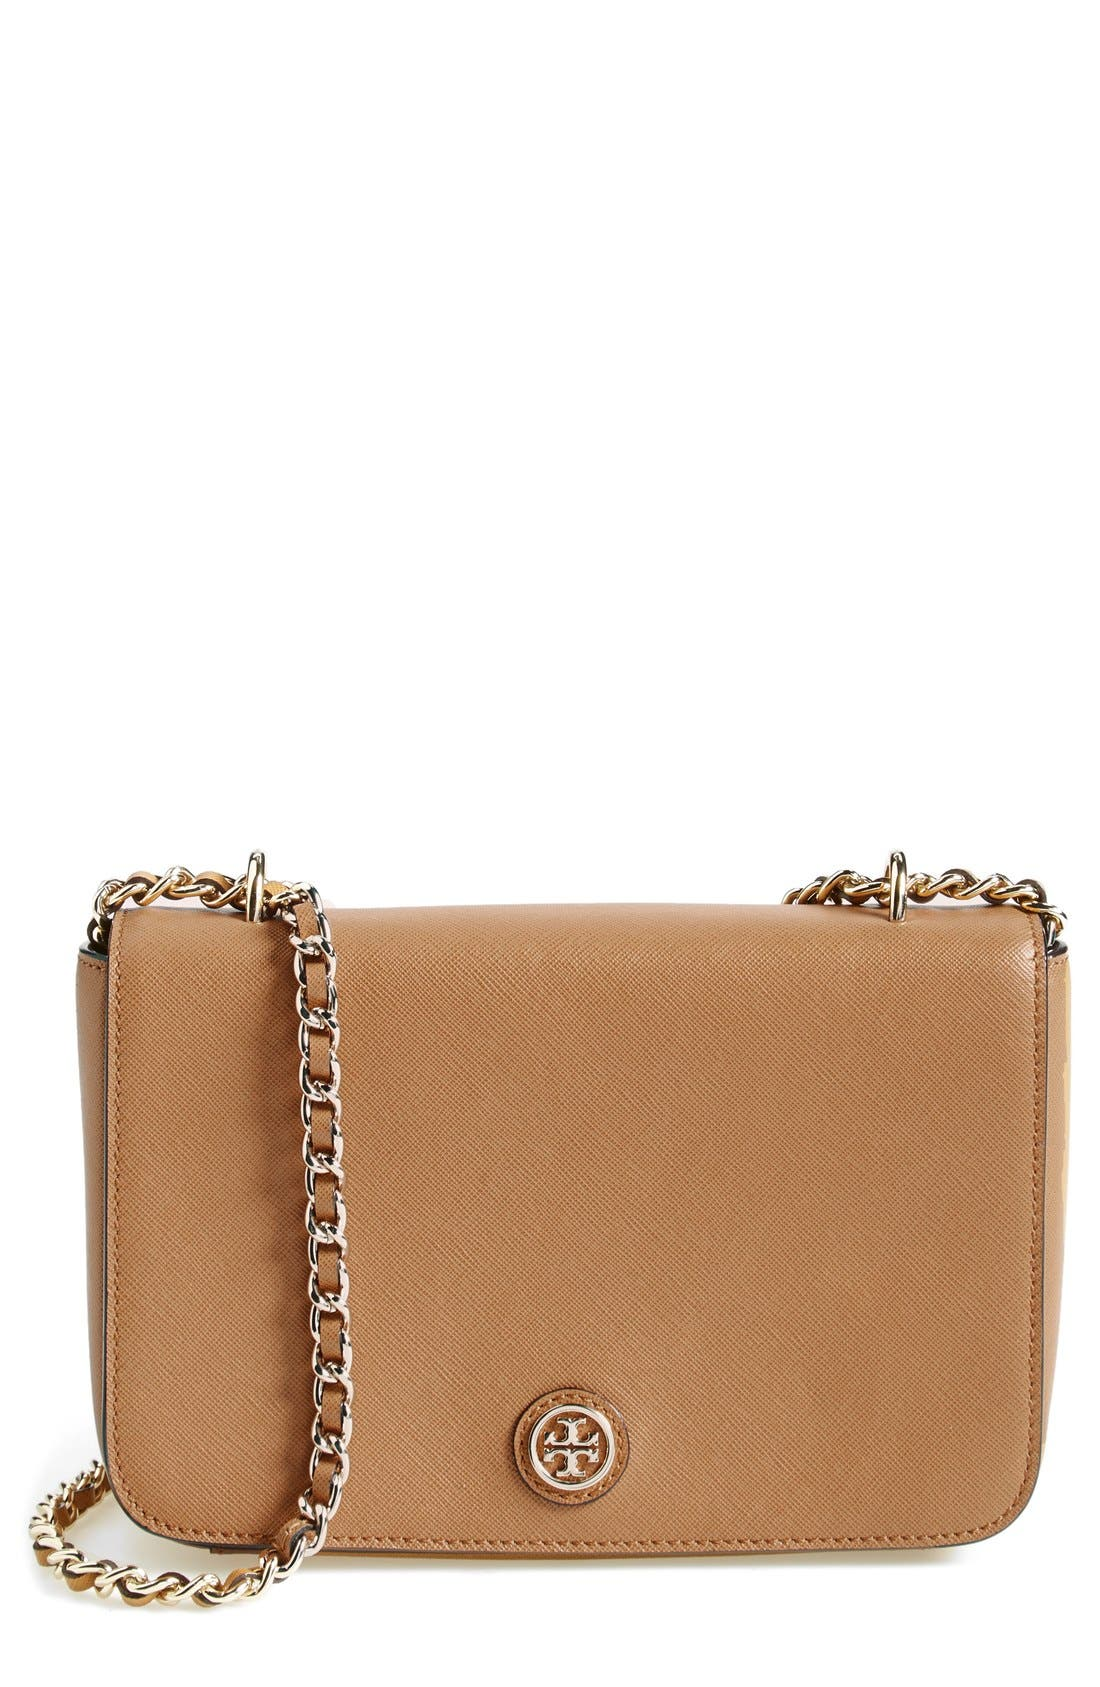 Alternate Image 1 Selected - Tory Burch 'Robinson' Leather Shoulder Bag